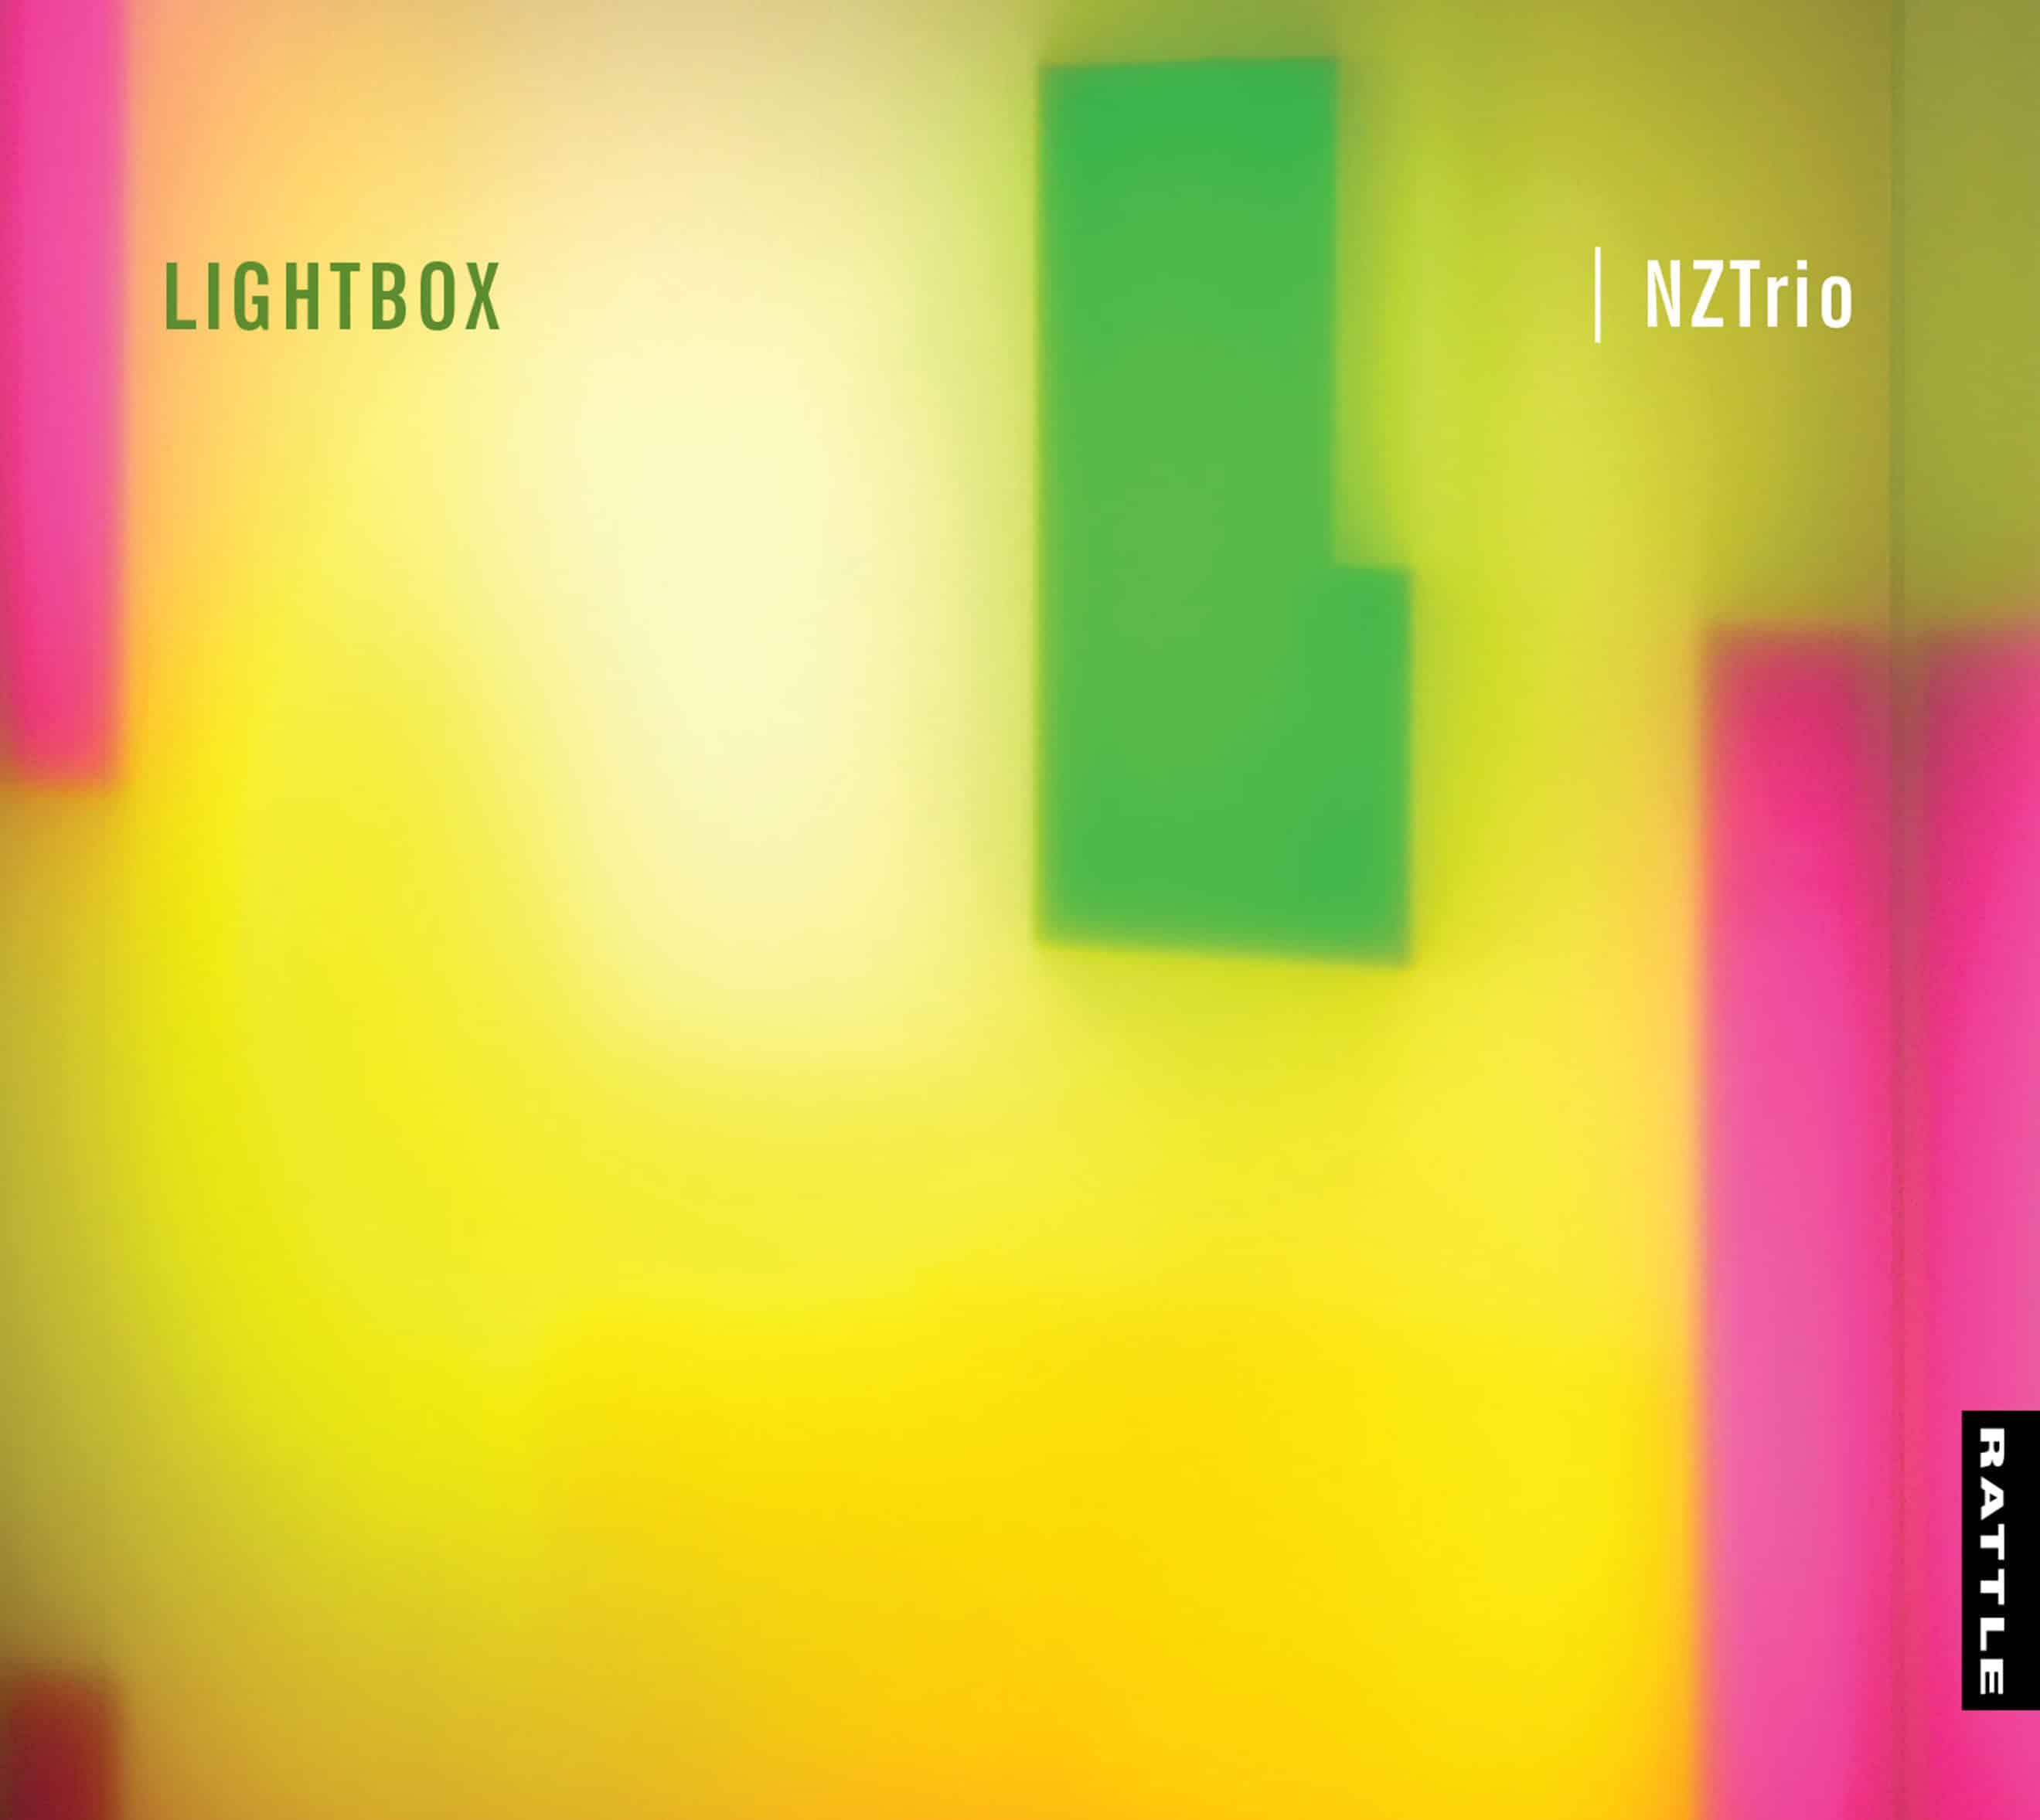 Lightbox NZTrio CD cover featuring music of NZ composers